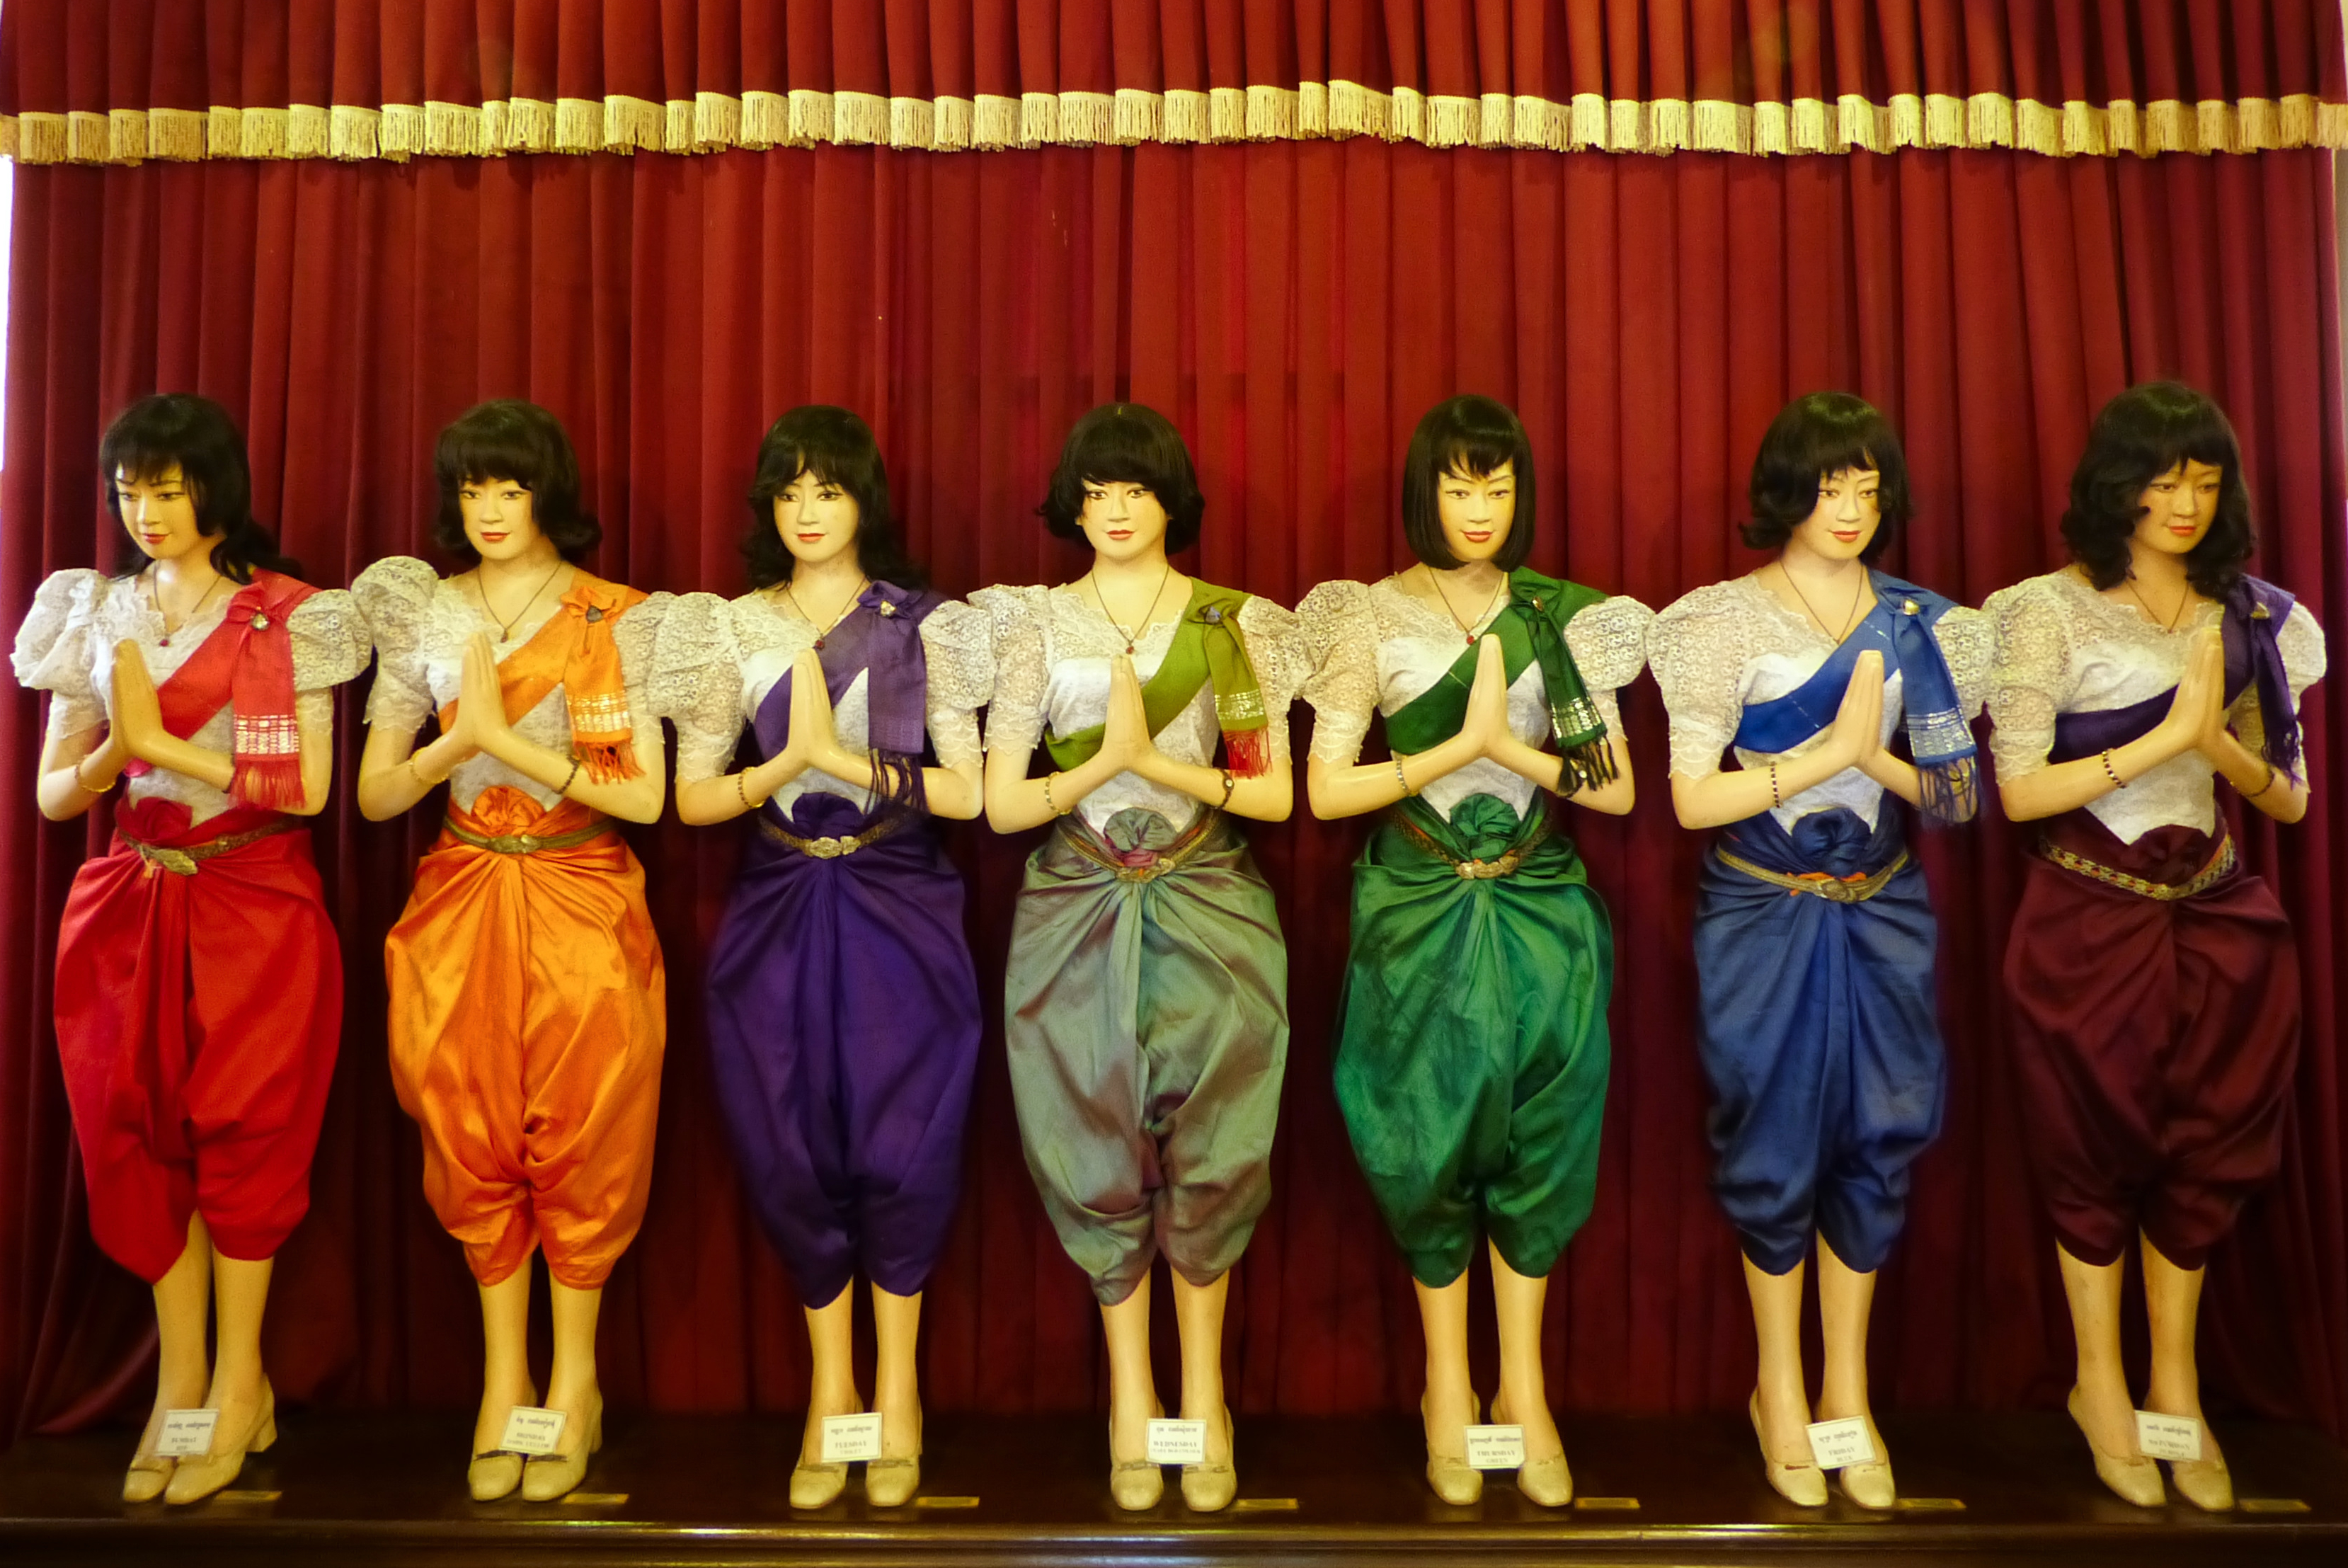 Models wearing auspicious Colours at the Royal Palace, Phnom Penh, Cambodia